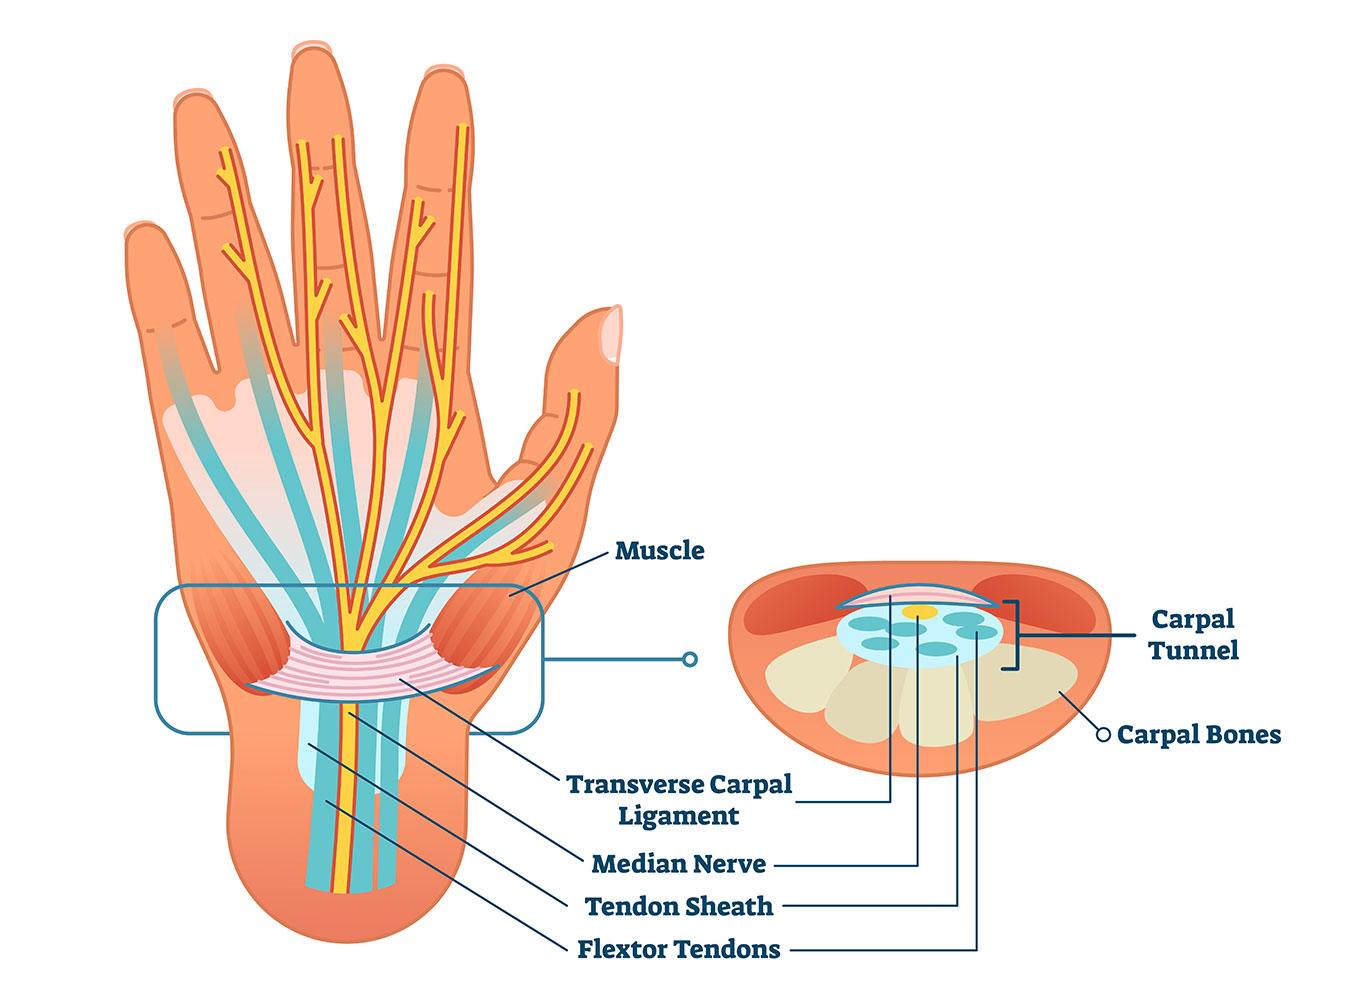 Carpal tunnel explained